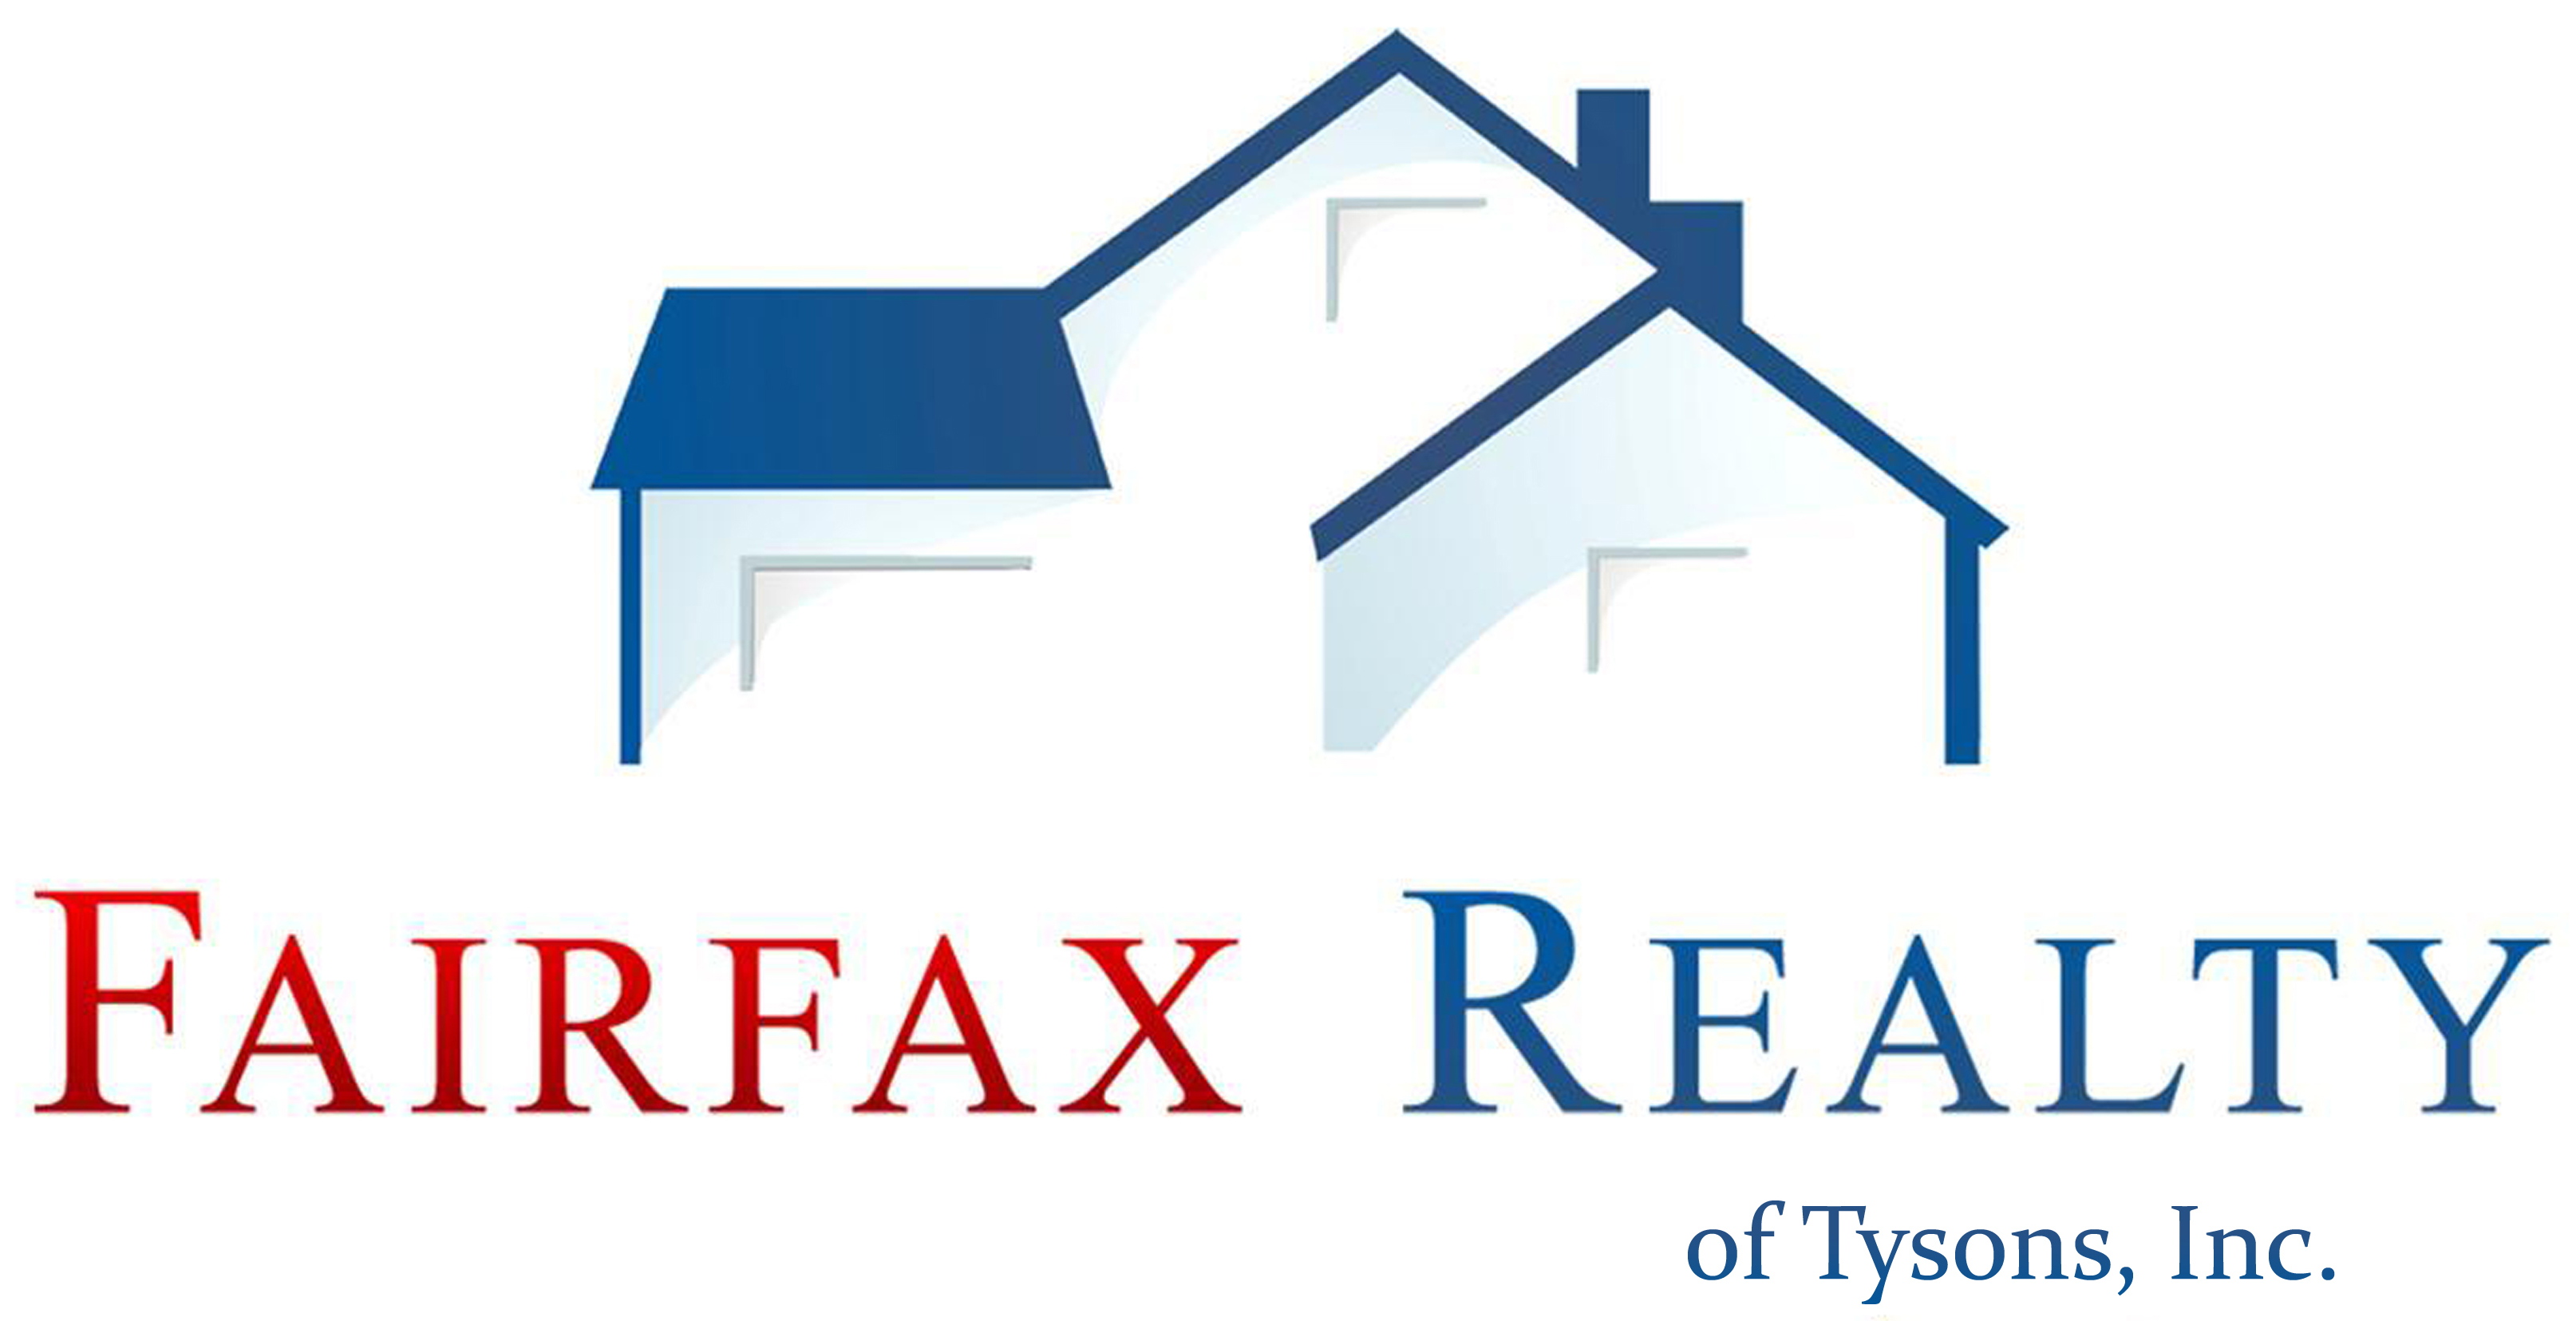 Fairfax Realty of Tysons